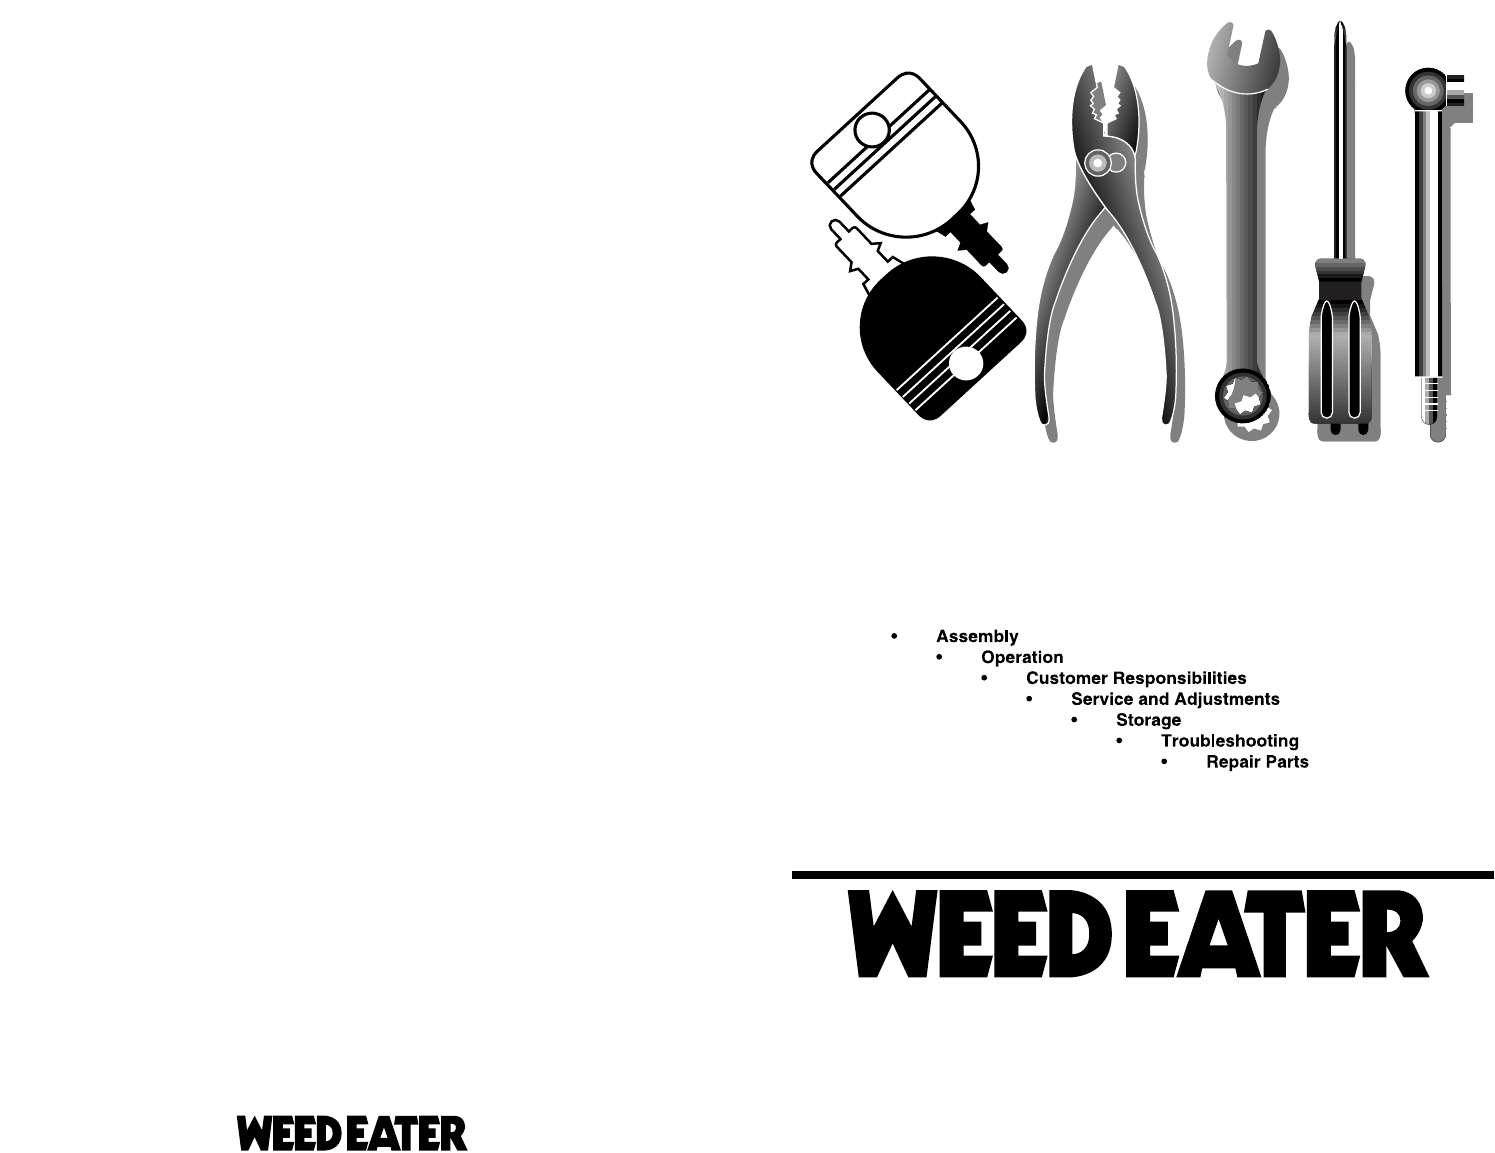 weed eater lawn mower parts diagrams. owner\u0027s manual weed eater lawn mower parts diagrams